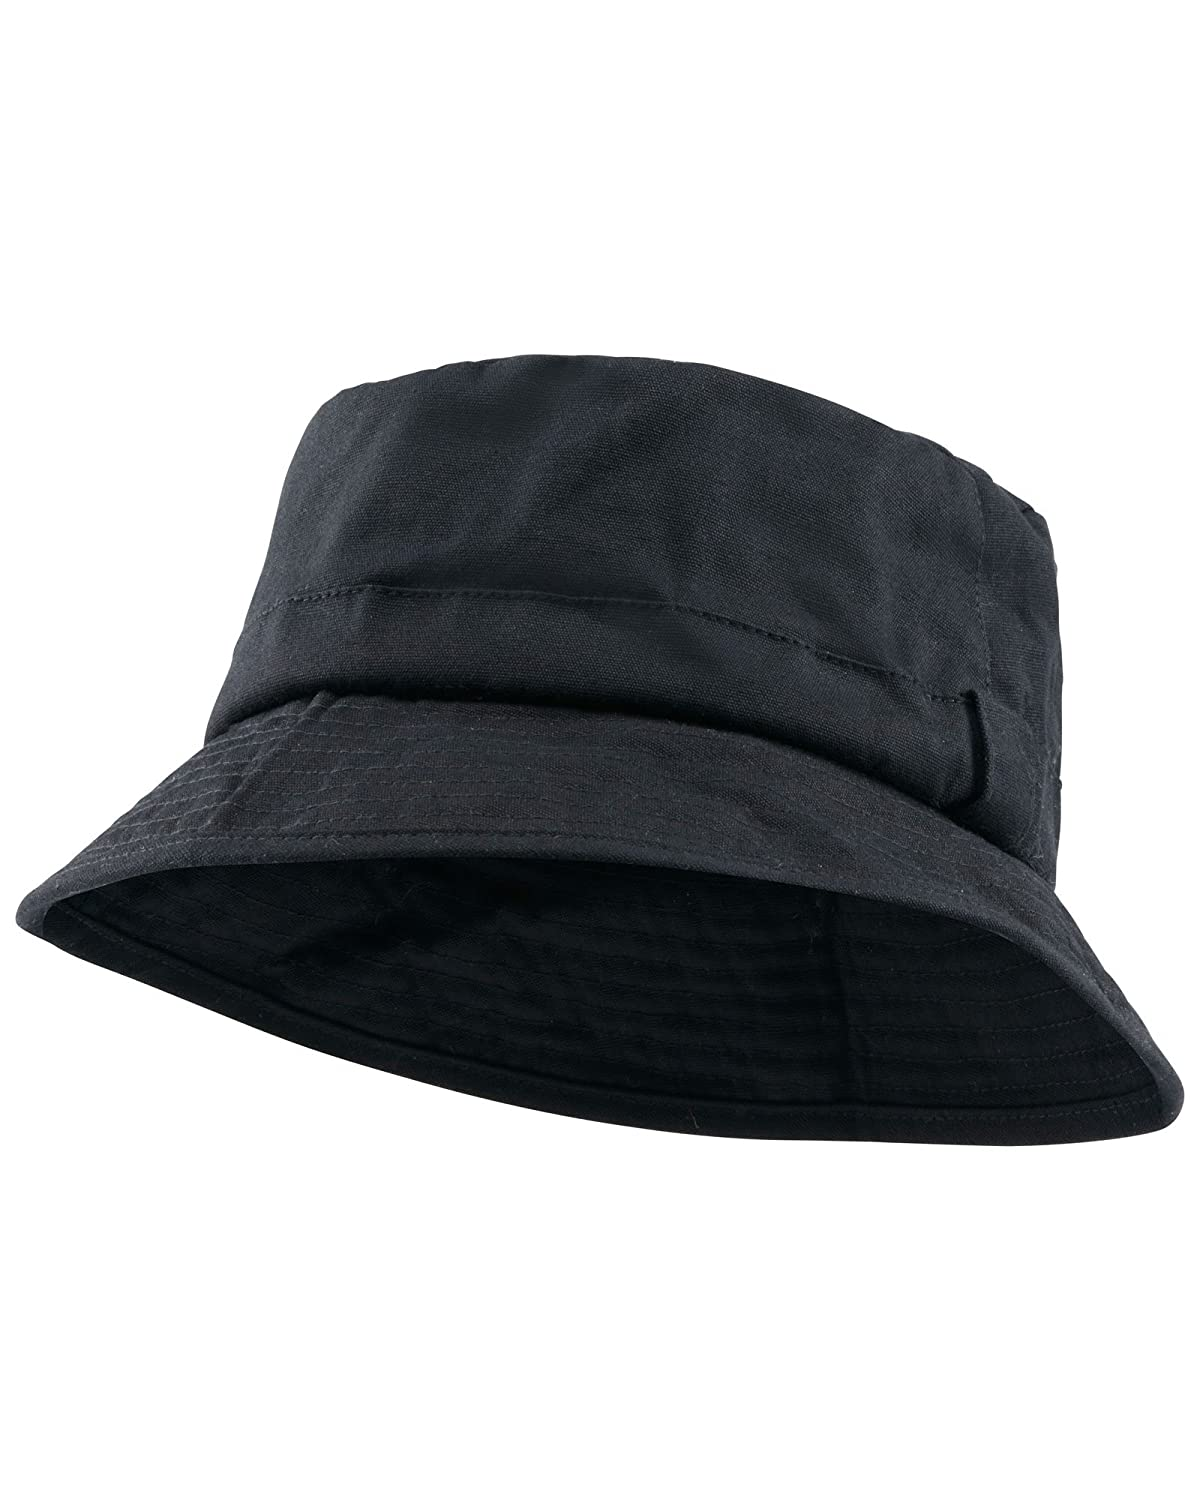 Cotton Traders Mens Womens Waterproof Waxed Hat